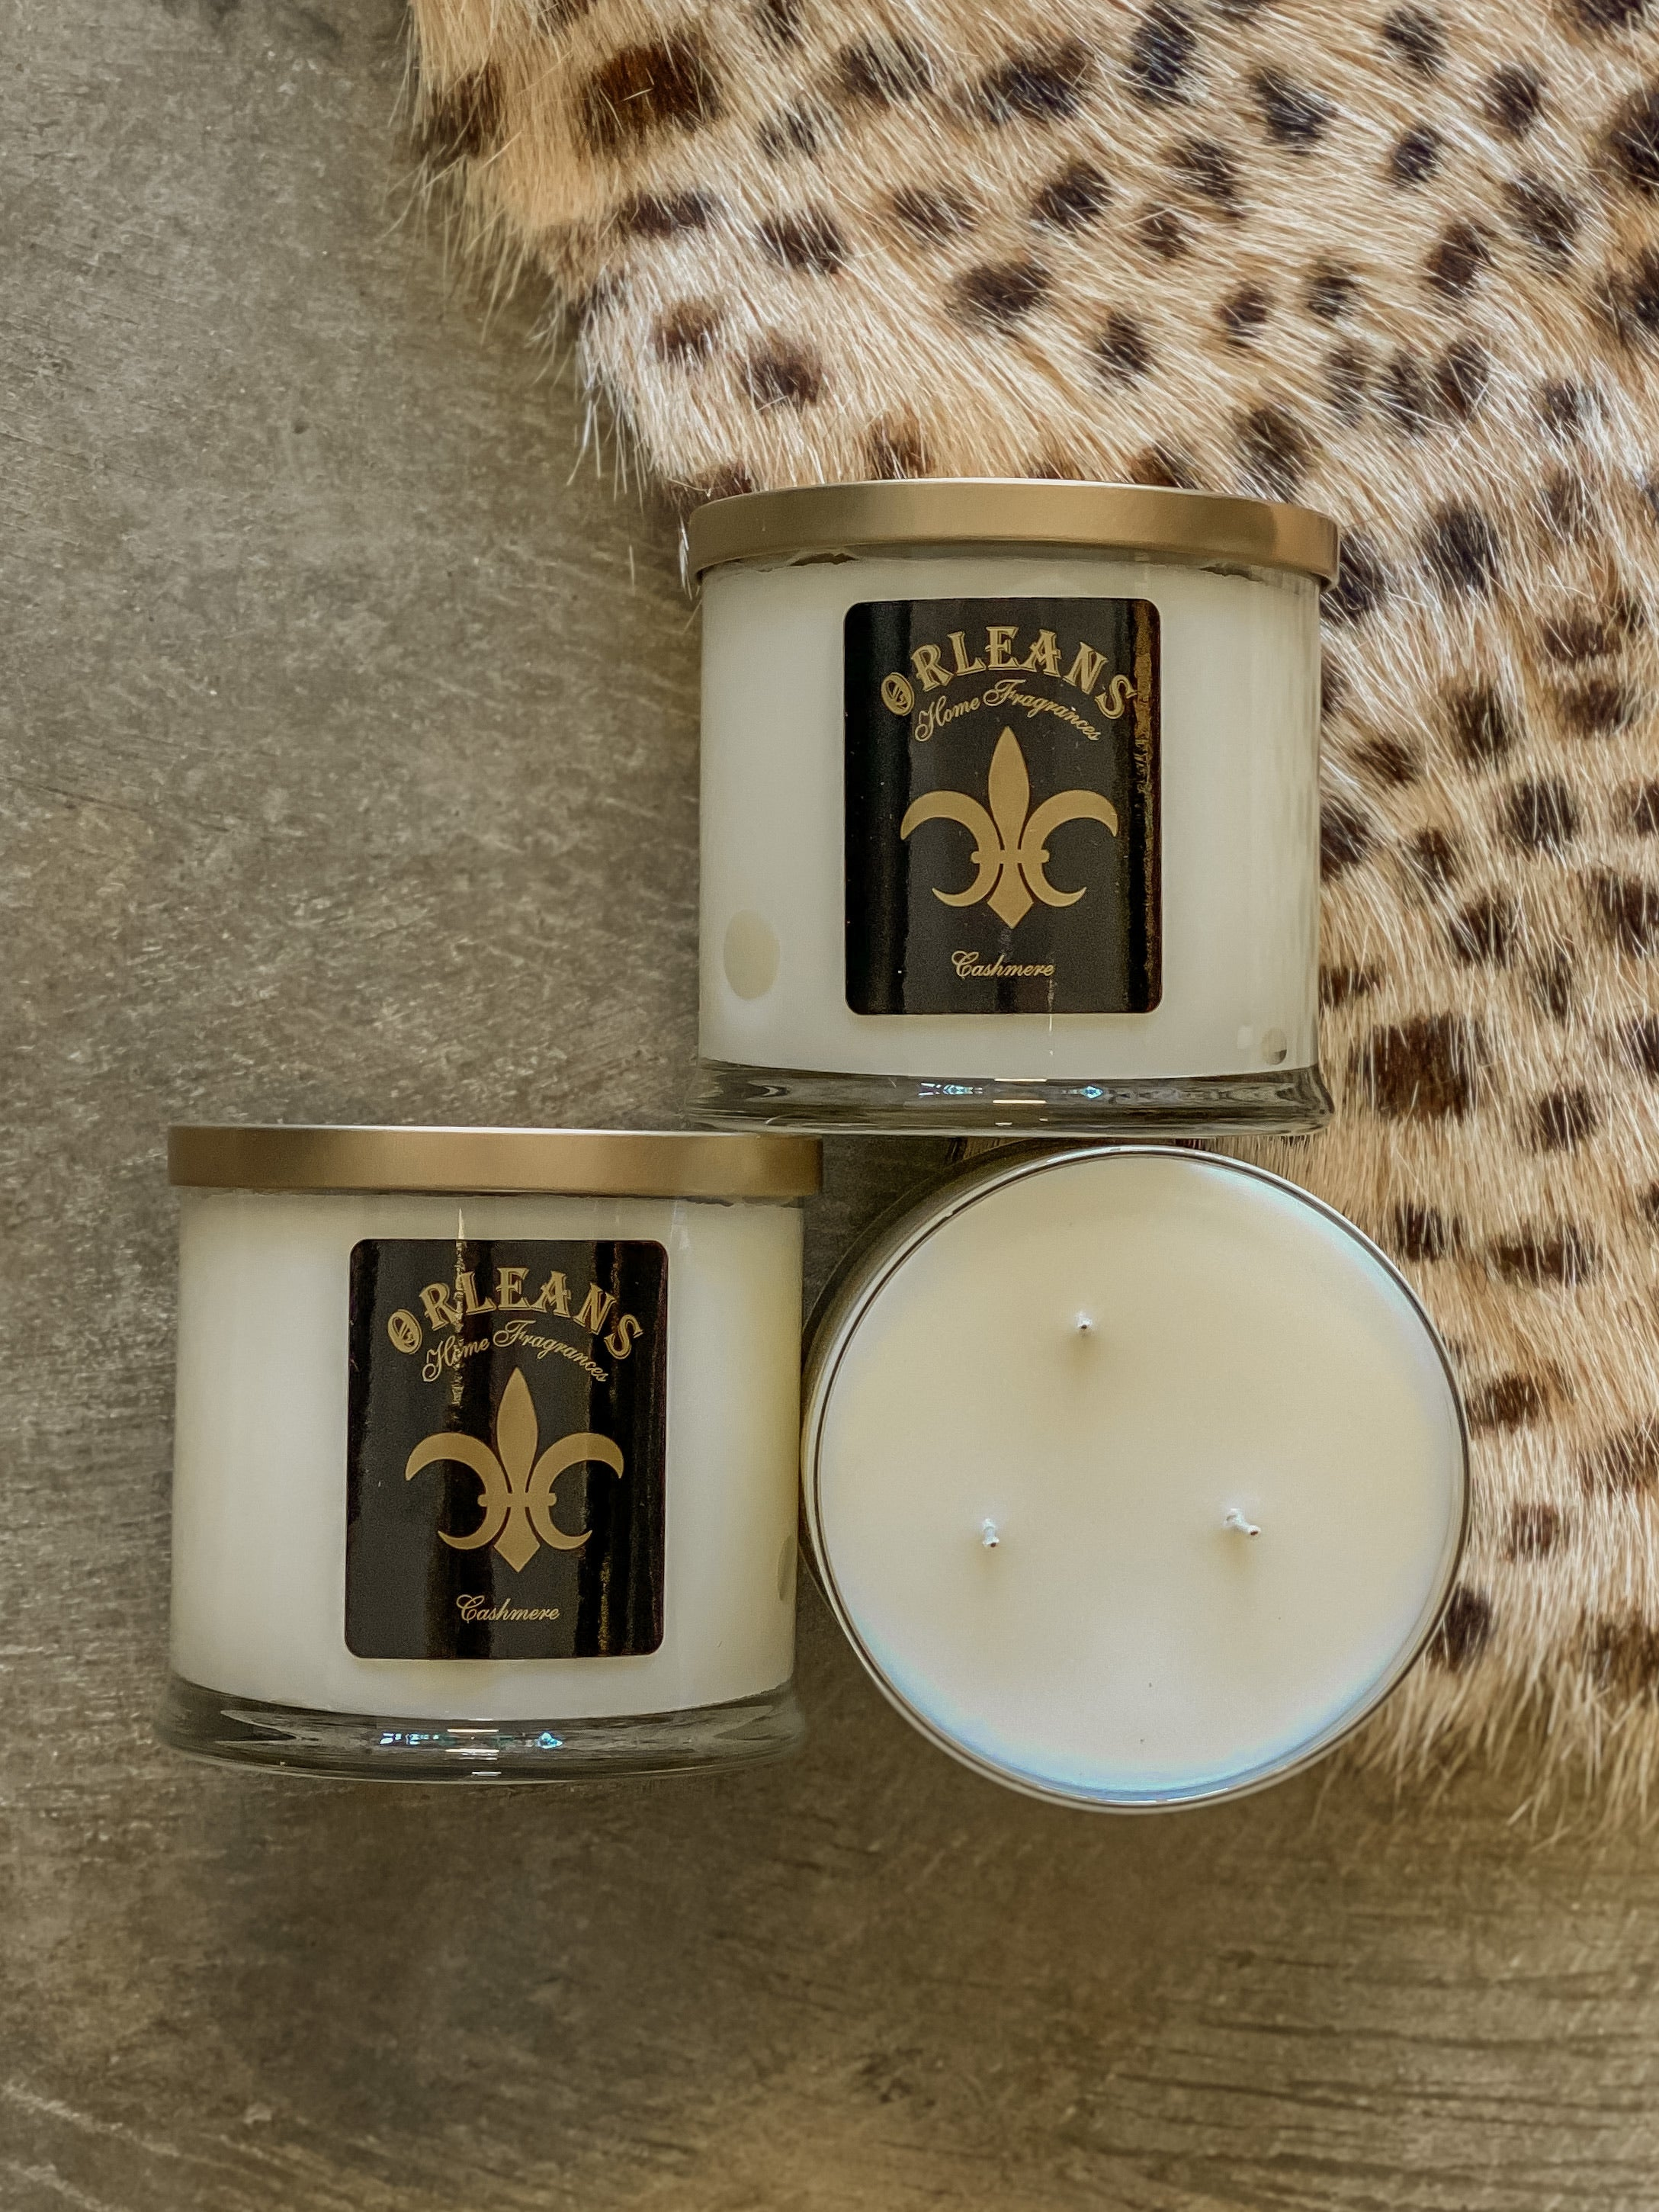 The Orleans Candle